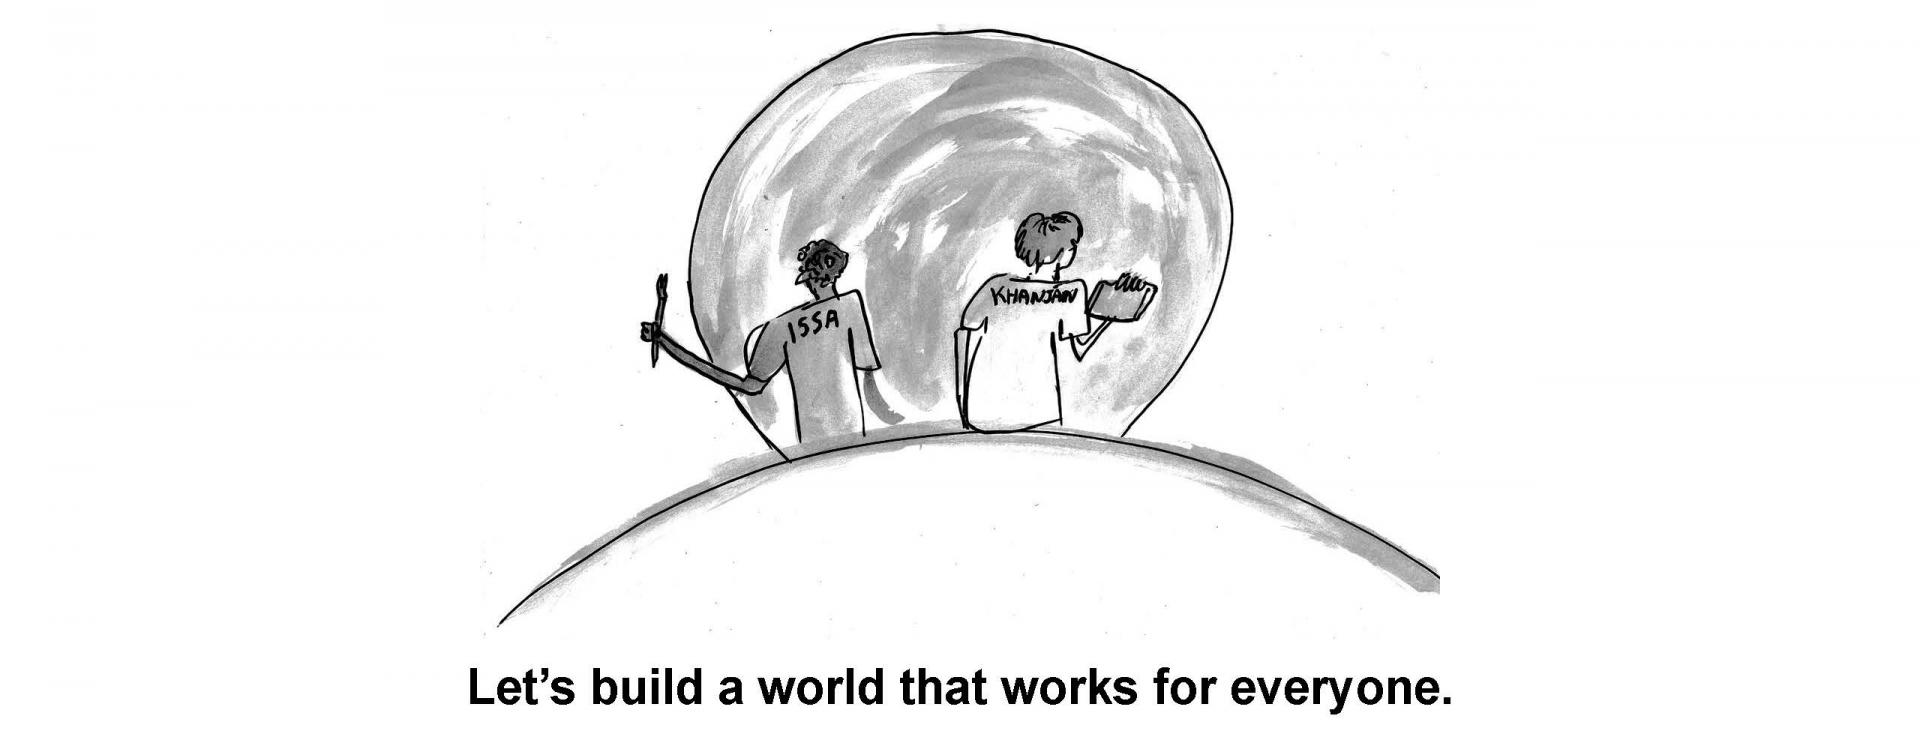 Lets build a world that works for everyone.